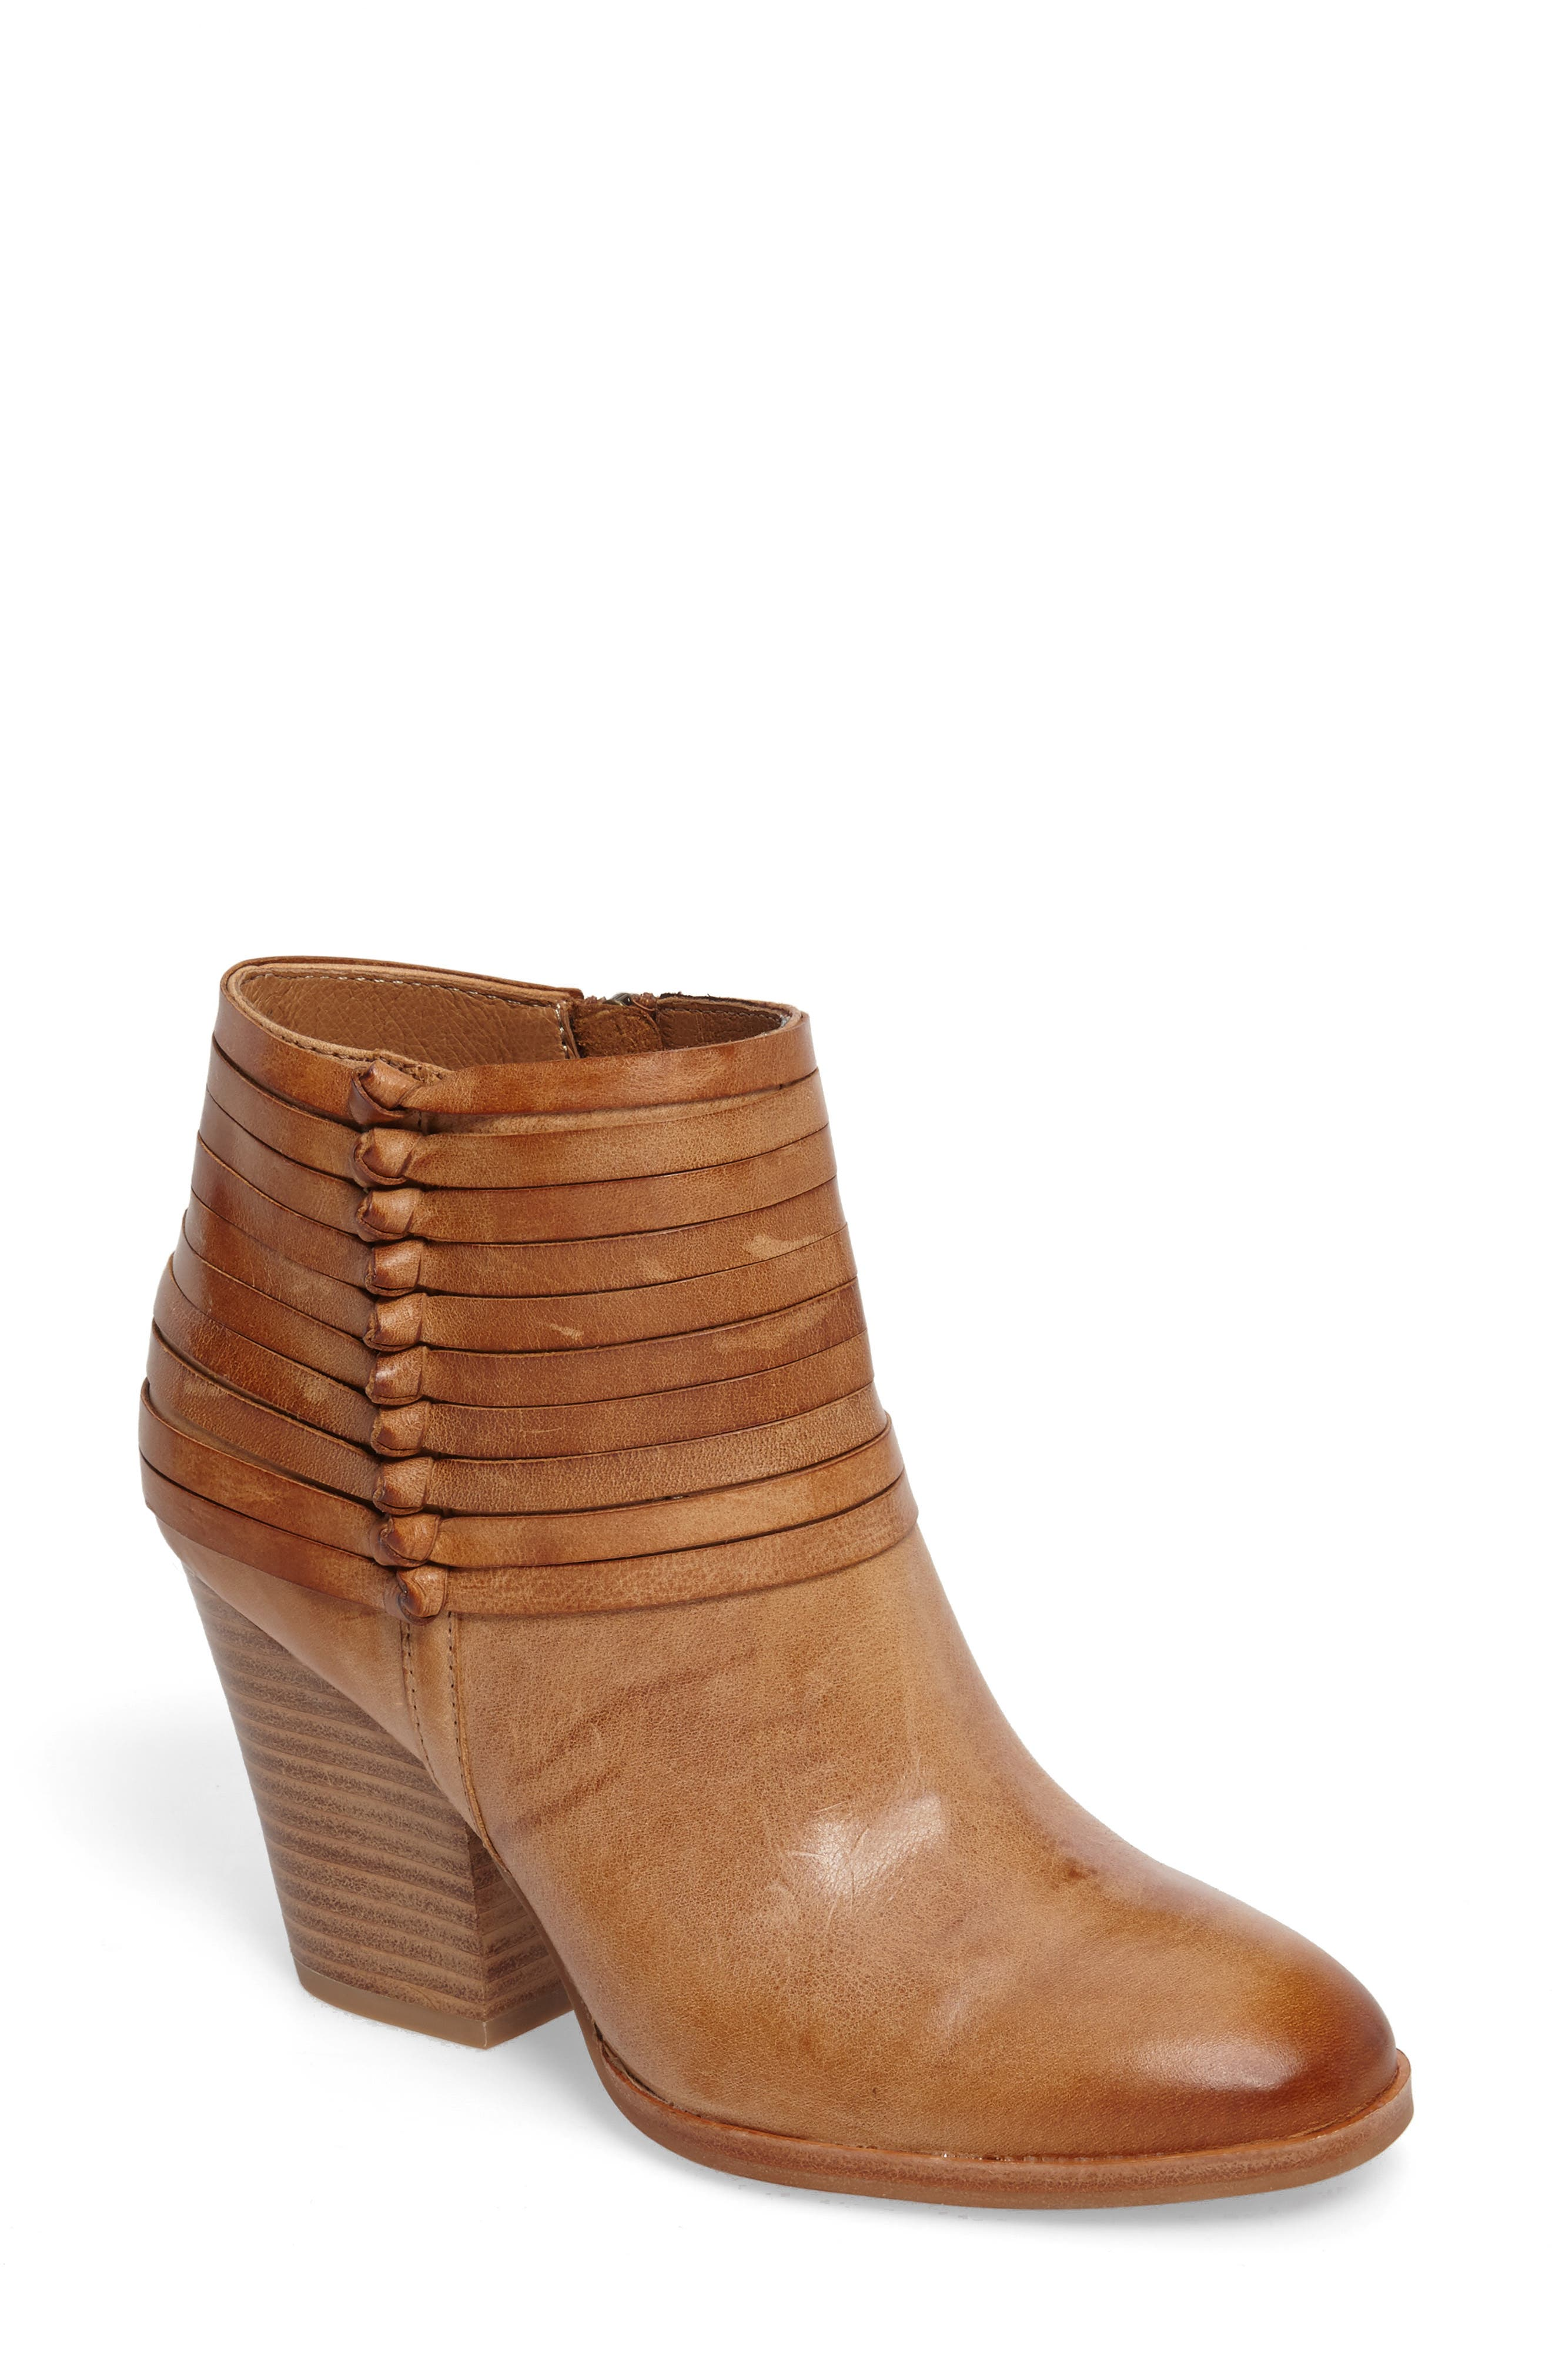 Alternate Image 1 Selected - Isolá Lander Strappy Bootie (Women)